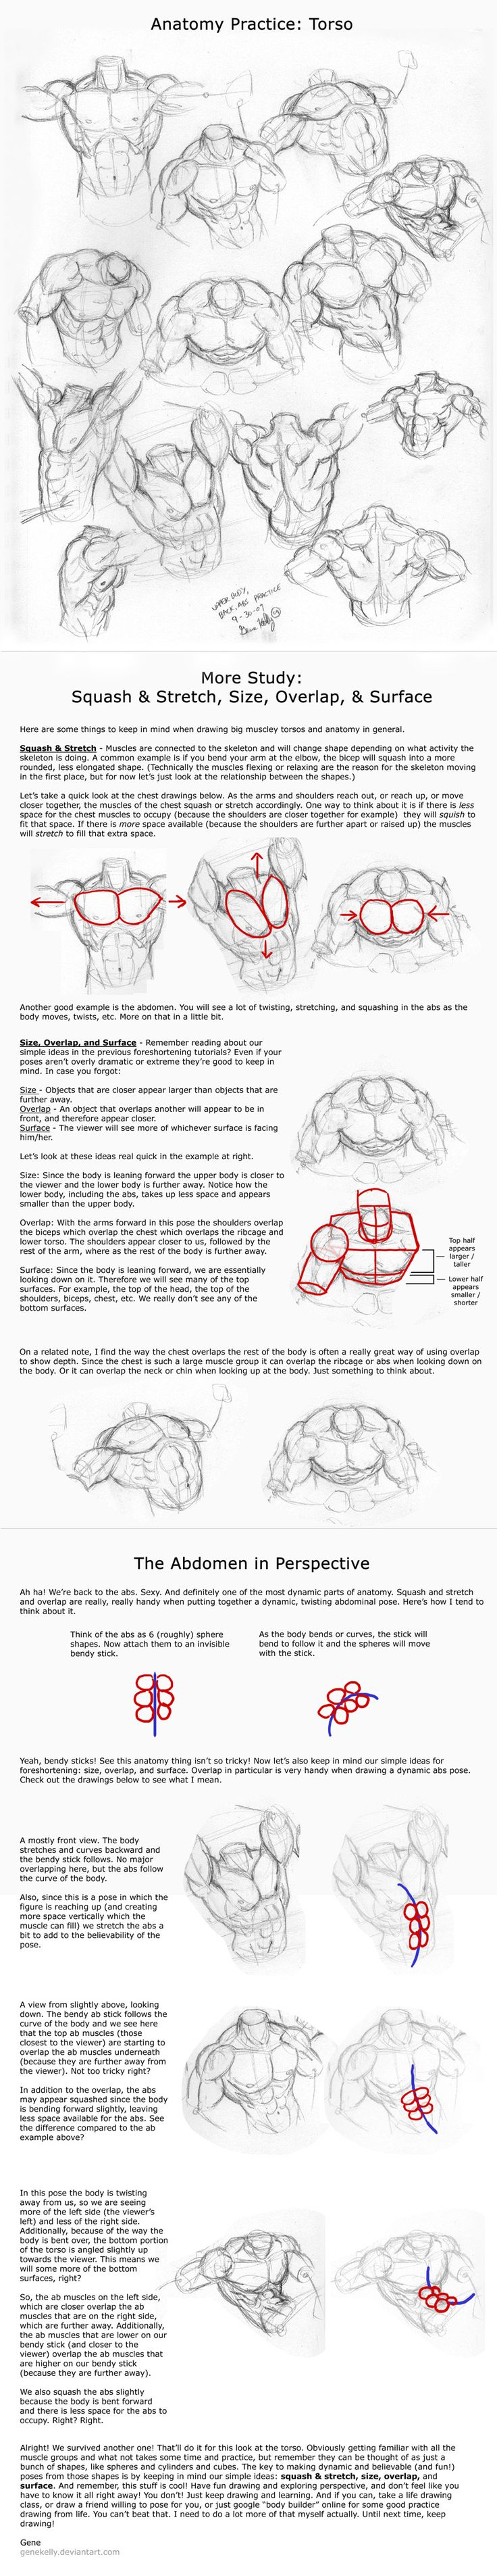 Wed 4: Torso Practice n' Tips by genekelly.deviantart.com on @deviantART join us http://pinterest.com/koztar/ https://itunes.apple.com/us/app/draw-pad-pro-amazing-notepads/id483071025?mt=8&at=10laCC